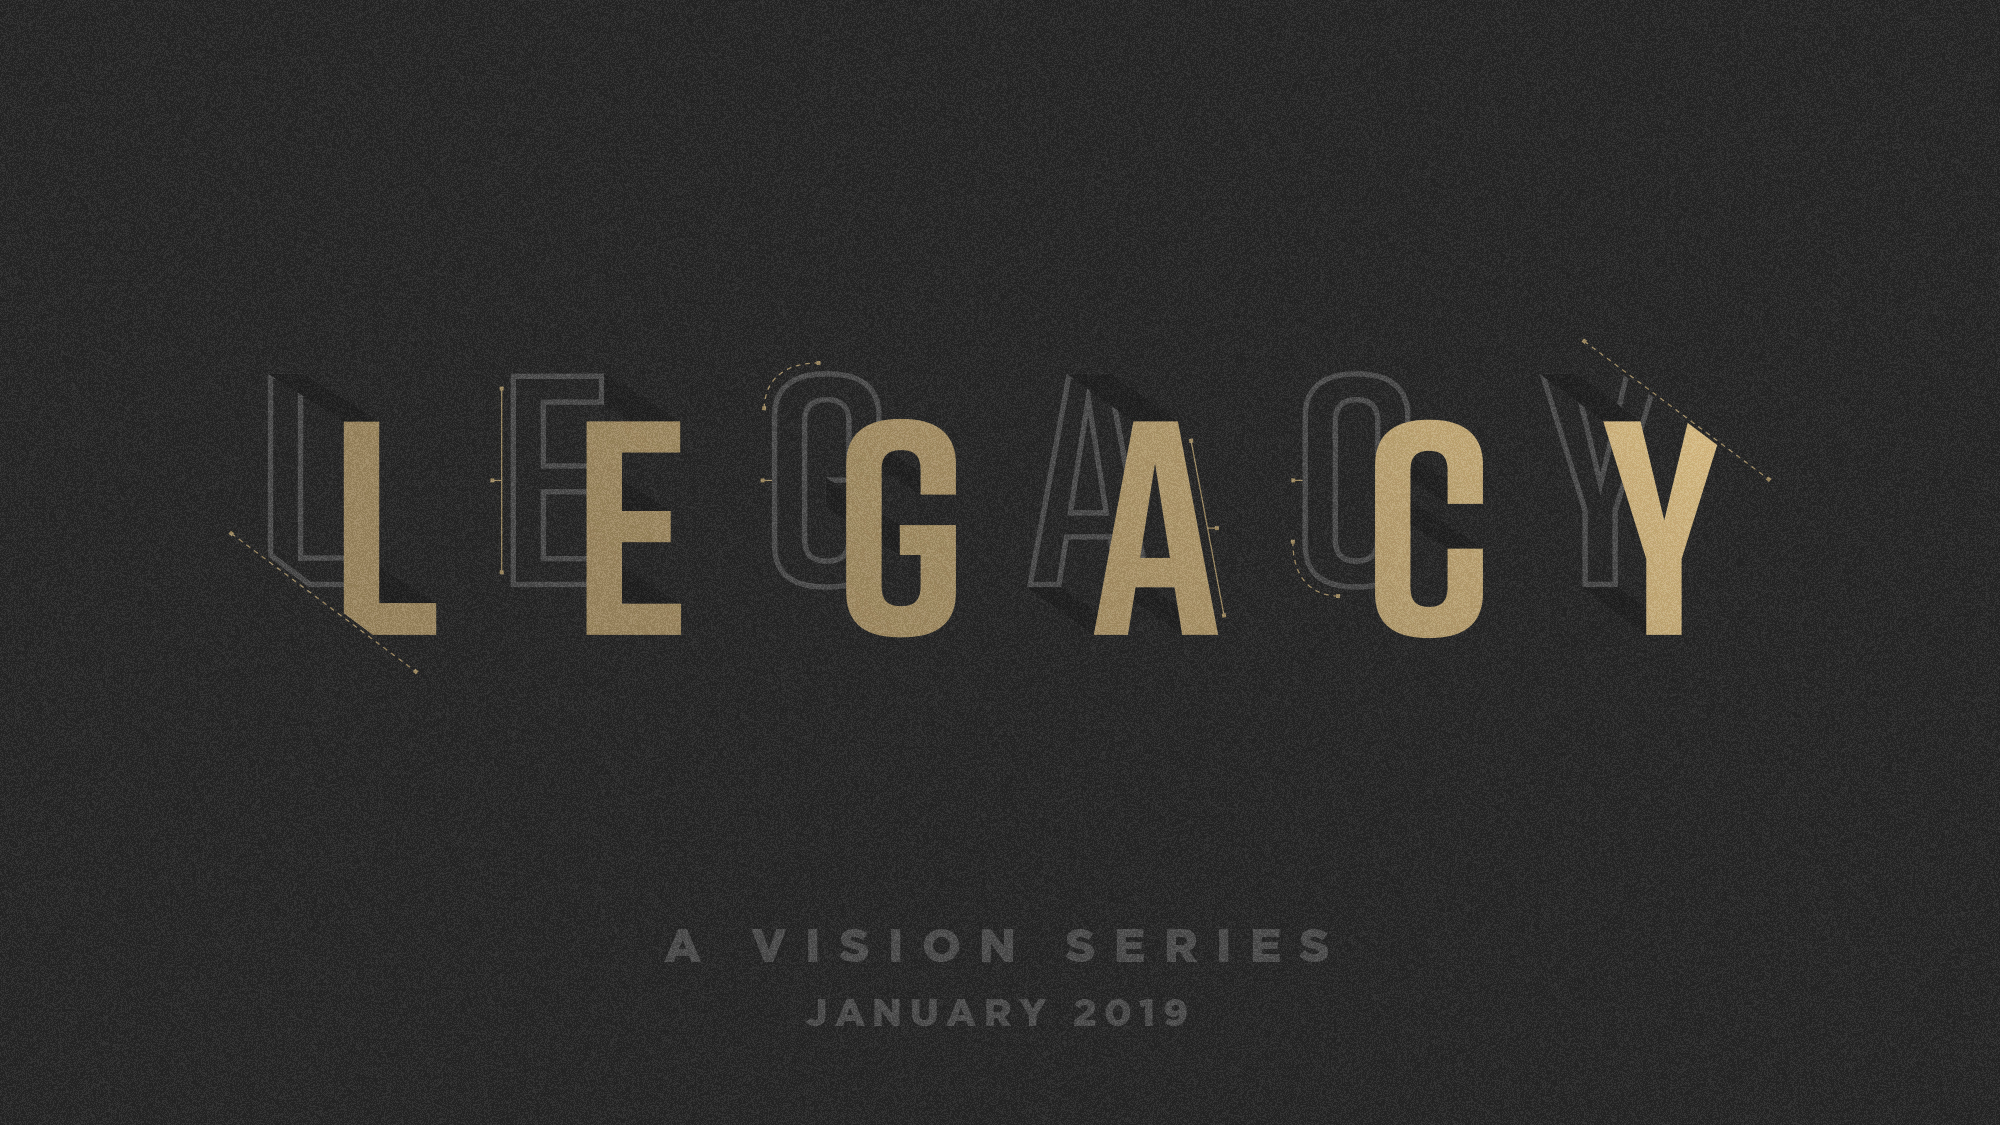 January 2019 - We kicked the year off with Pastor Robbie sharing some of the vision and direction of Legacy City for 2019 and beyond. We spent time focusing on our Vision Statement and some of our Core Values, as well as the Biblical basis behind them.